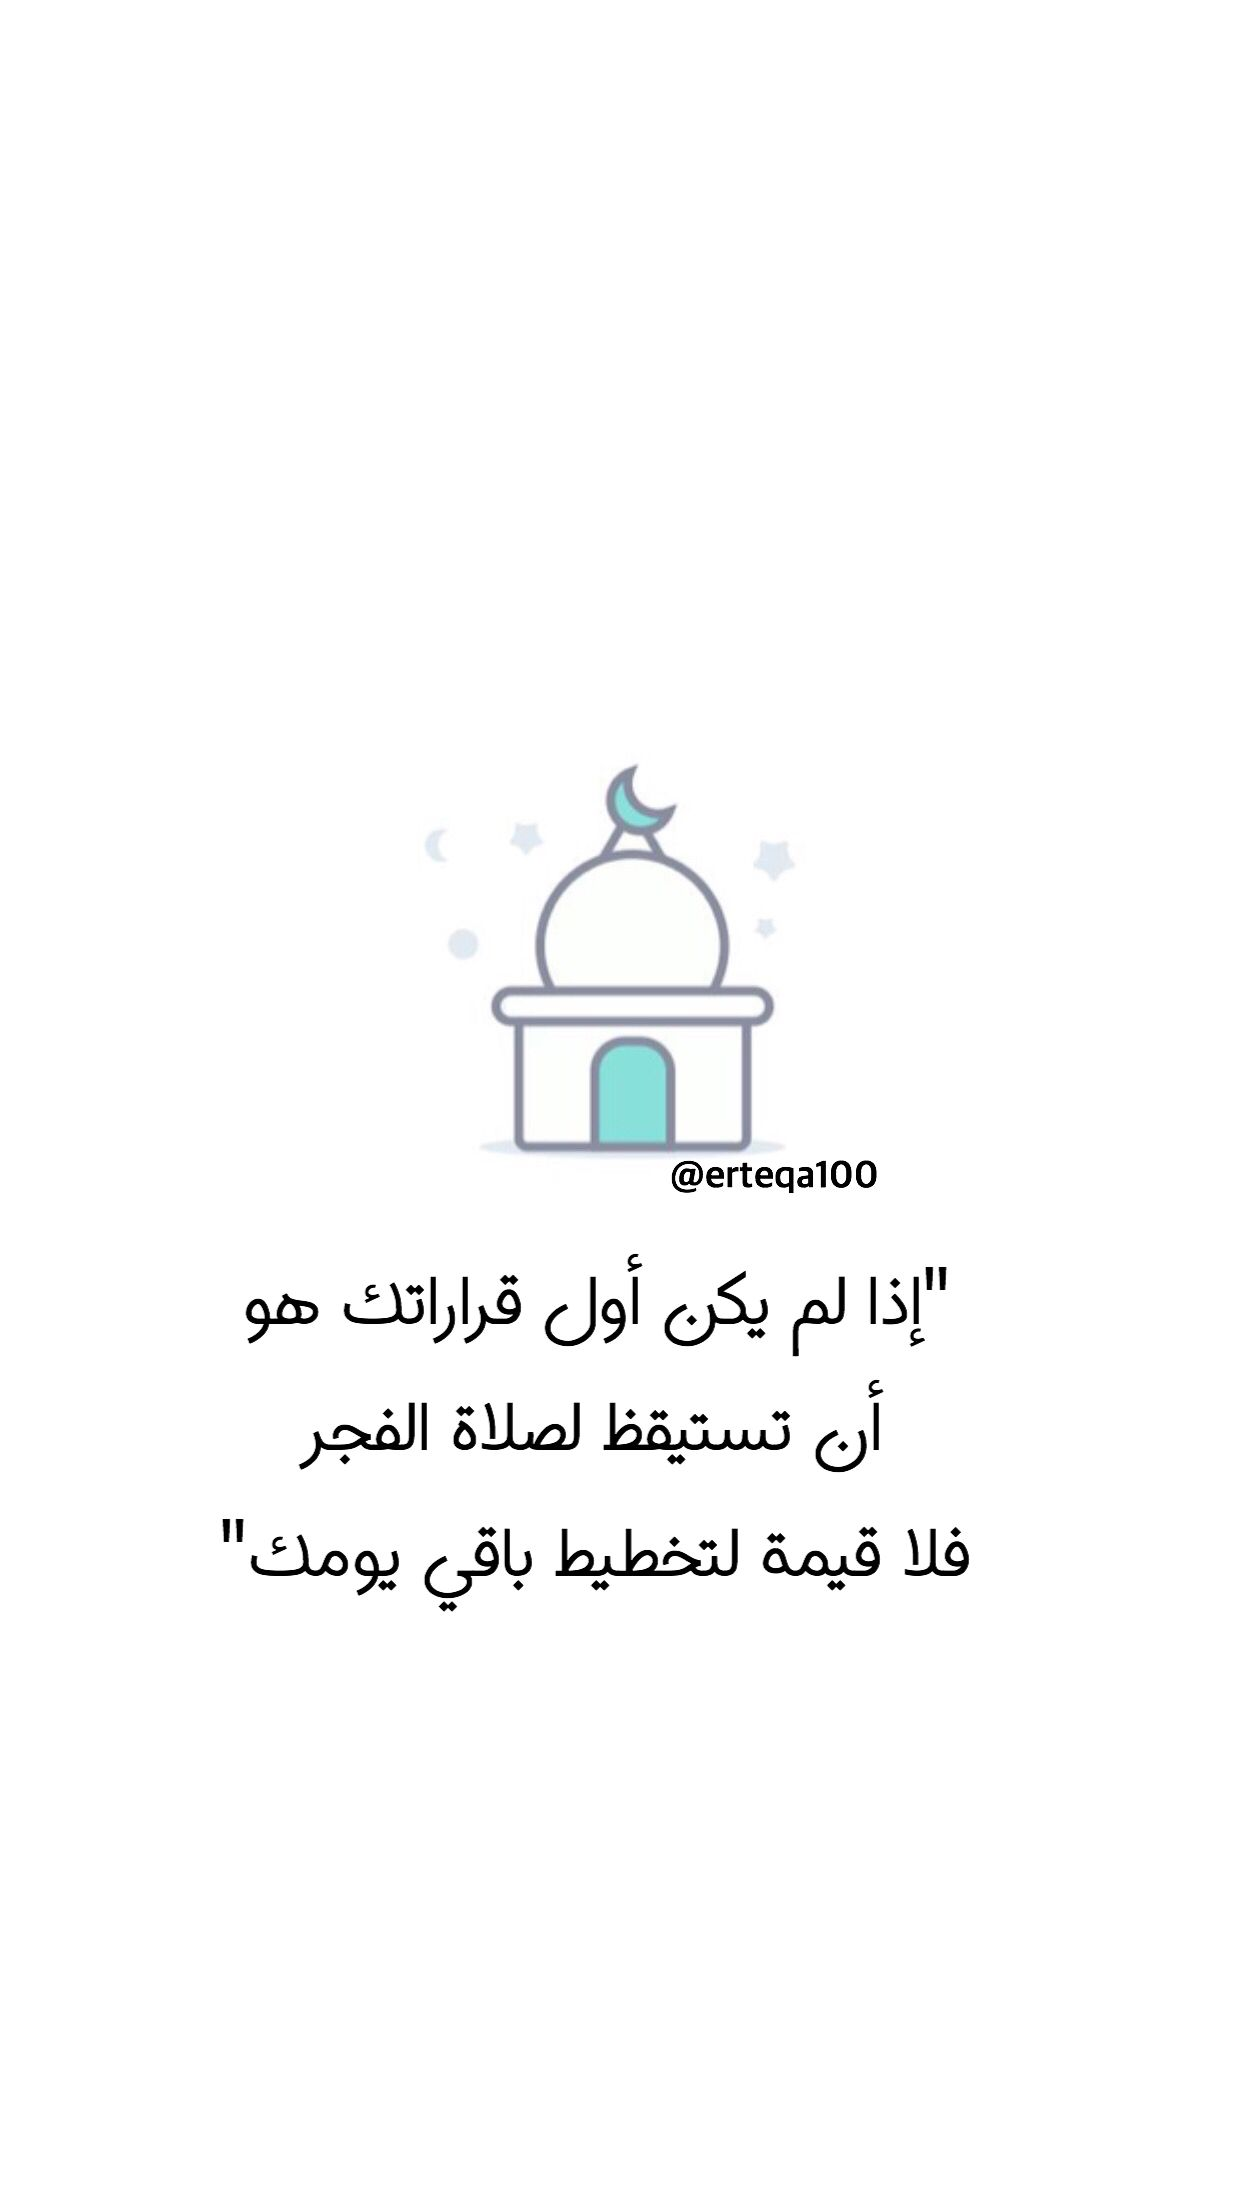 Pin By Fatima Hasan On كلمات Words Quotes Quran Quotes Positive Quotes